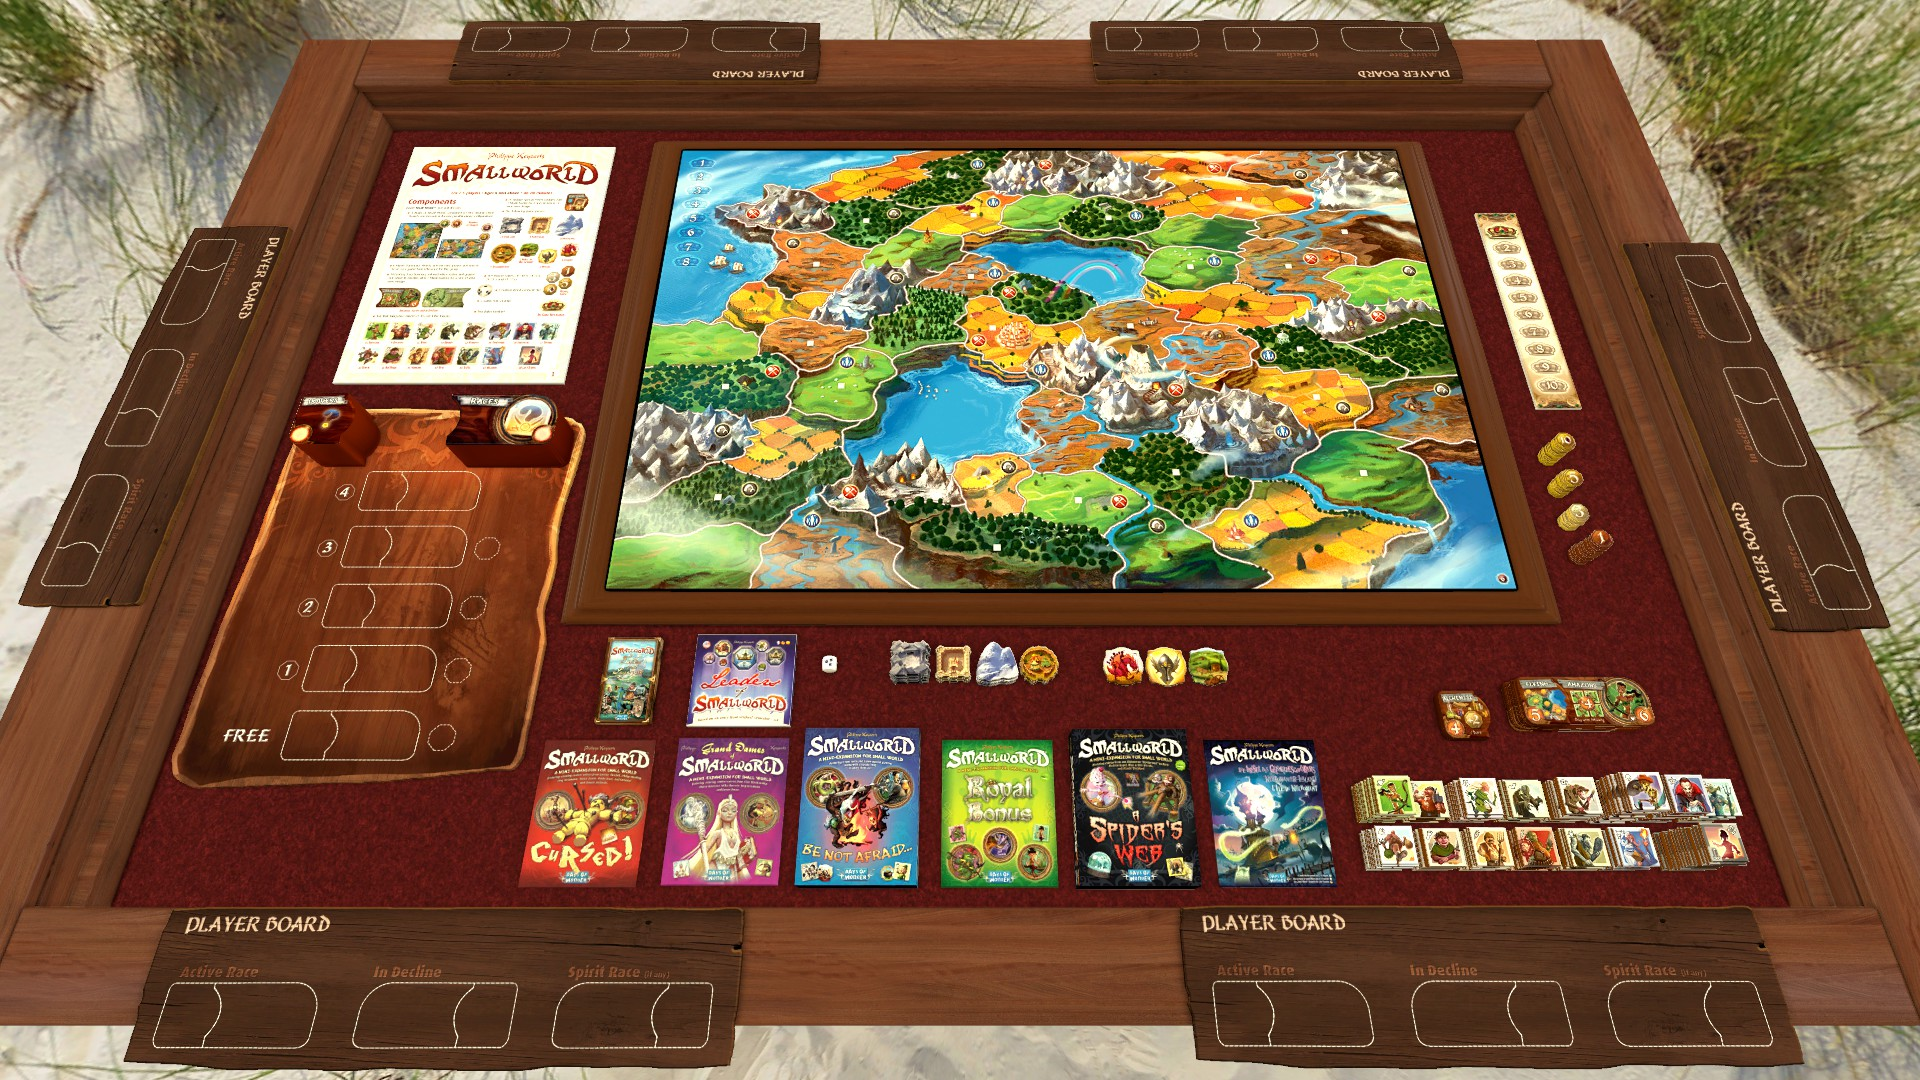 small world and expansions at tabletop simulator nexus - mods and